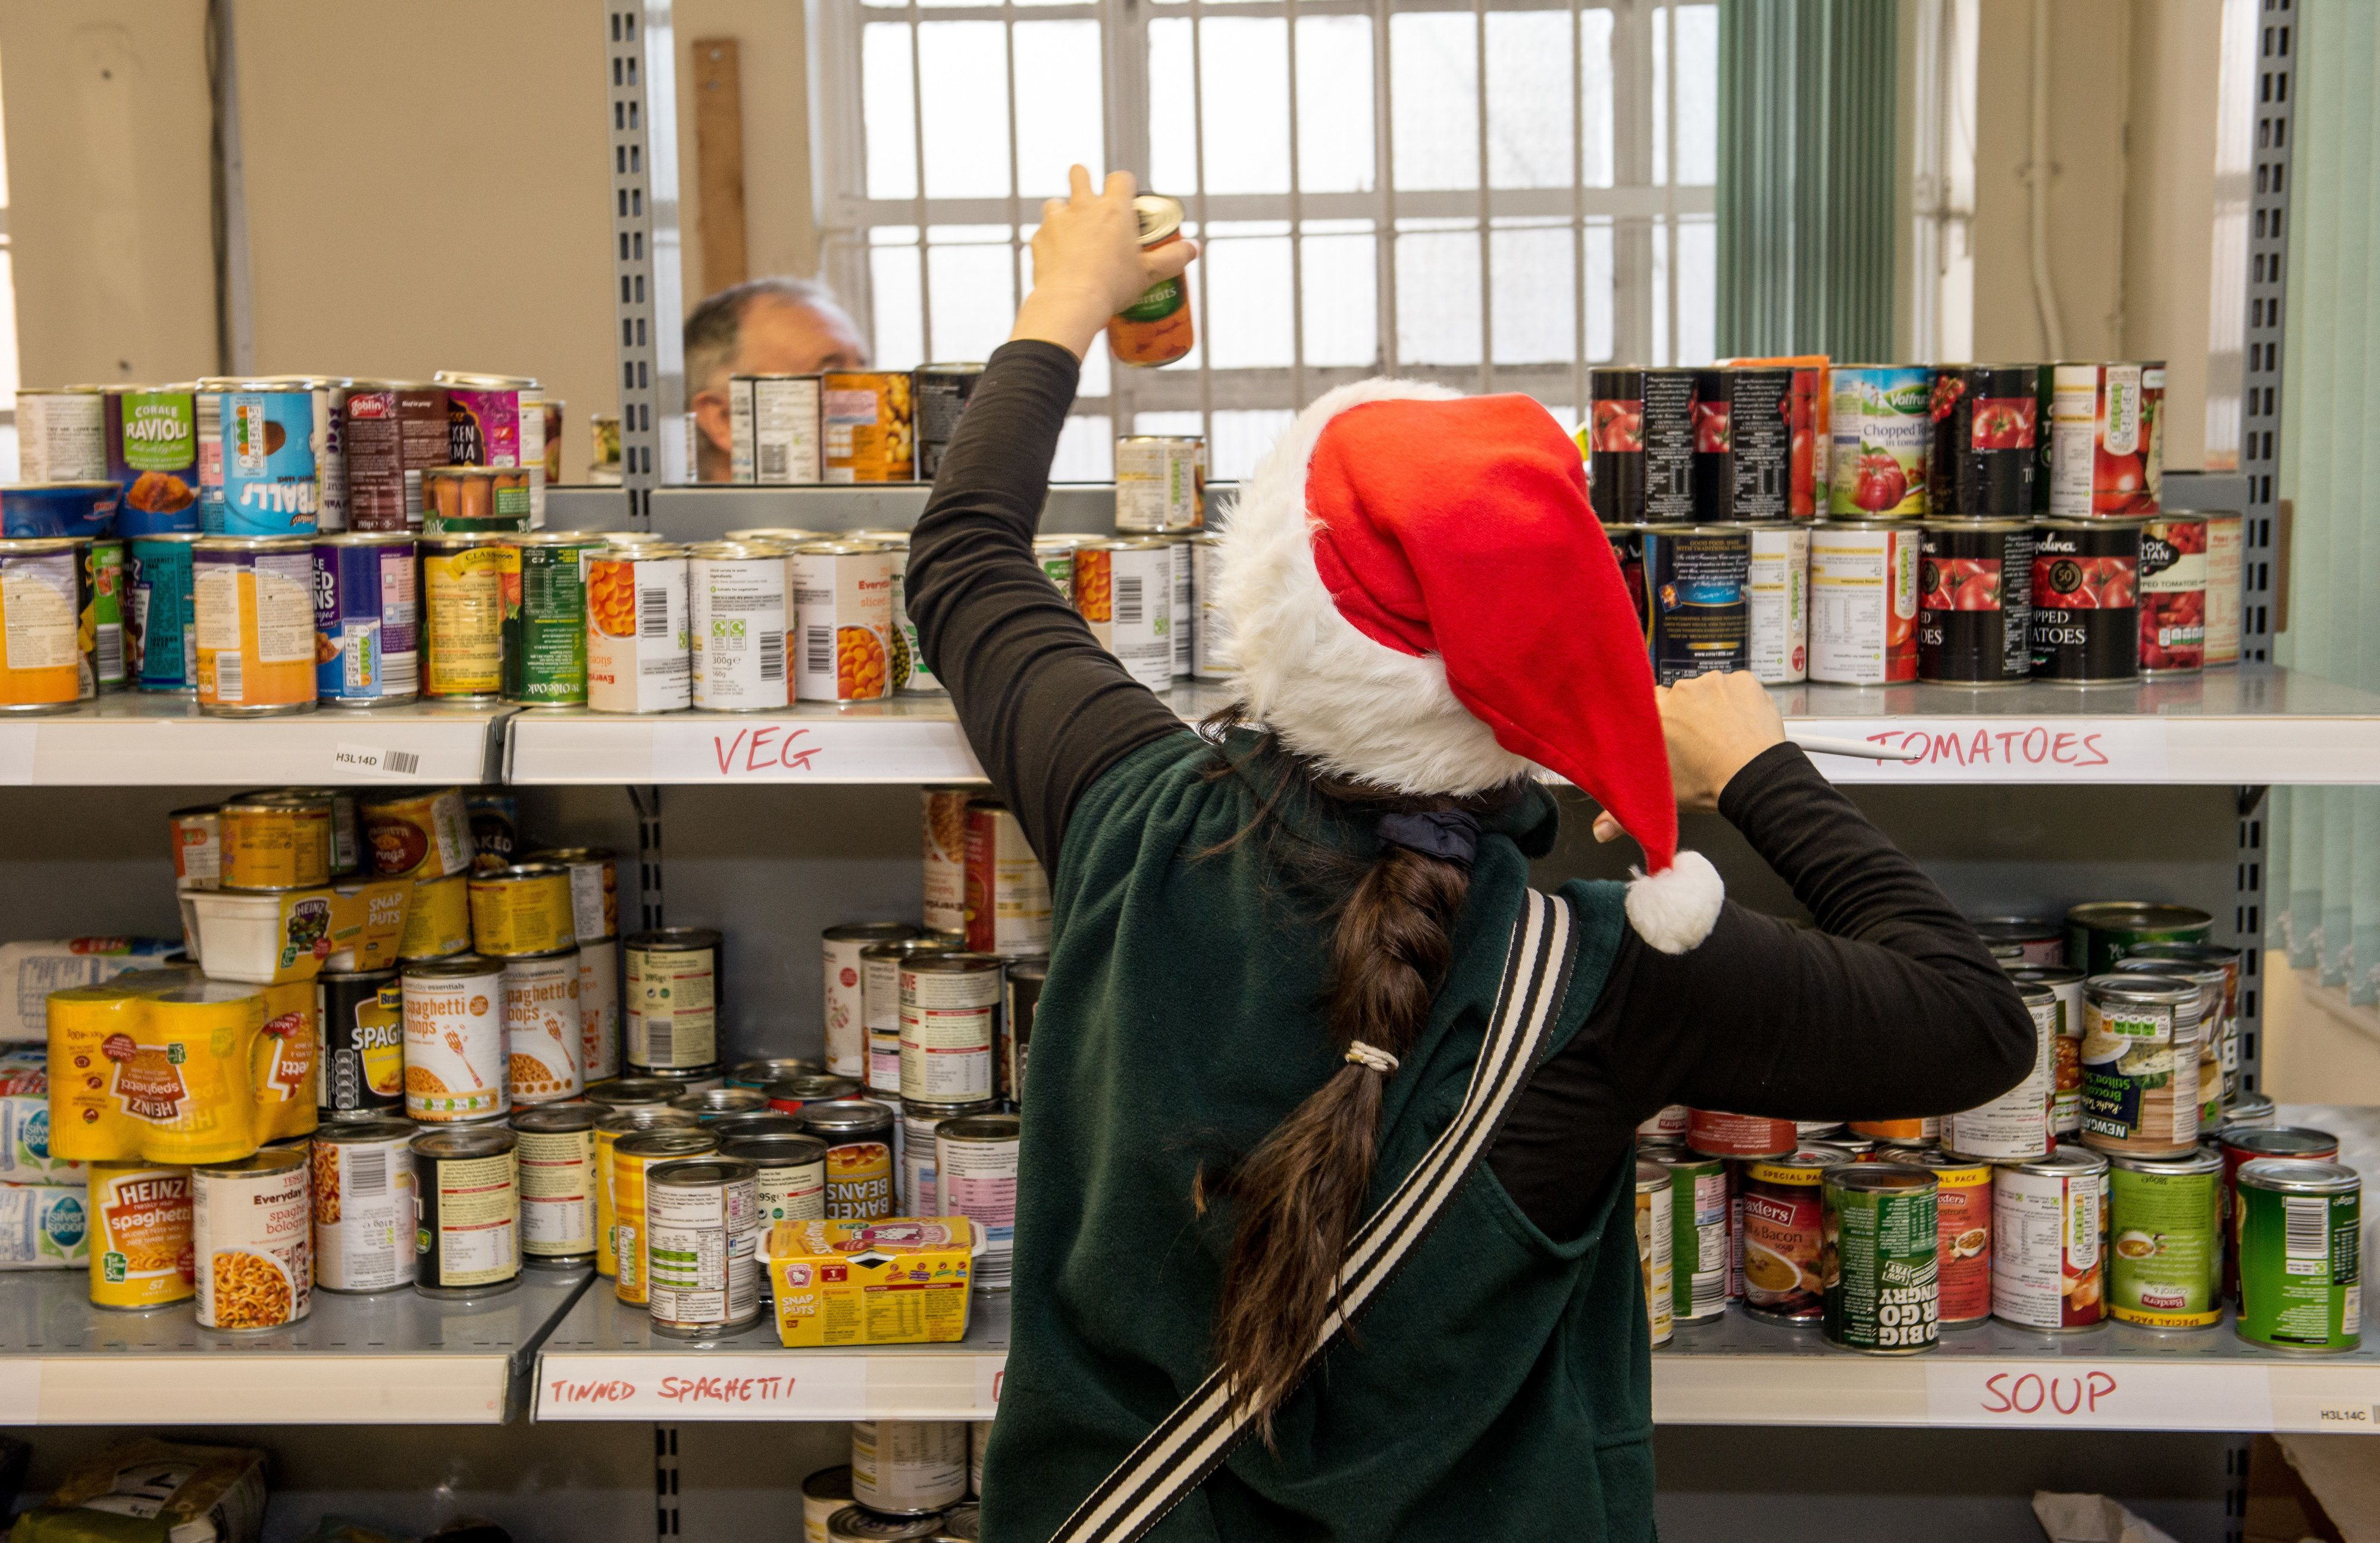 Universal Credit Set To Make Foodbank Usage Reach Record Levels This